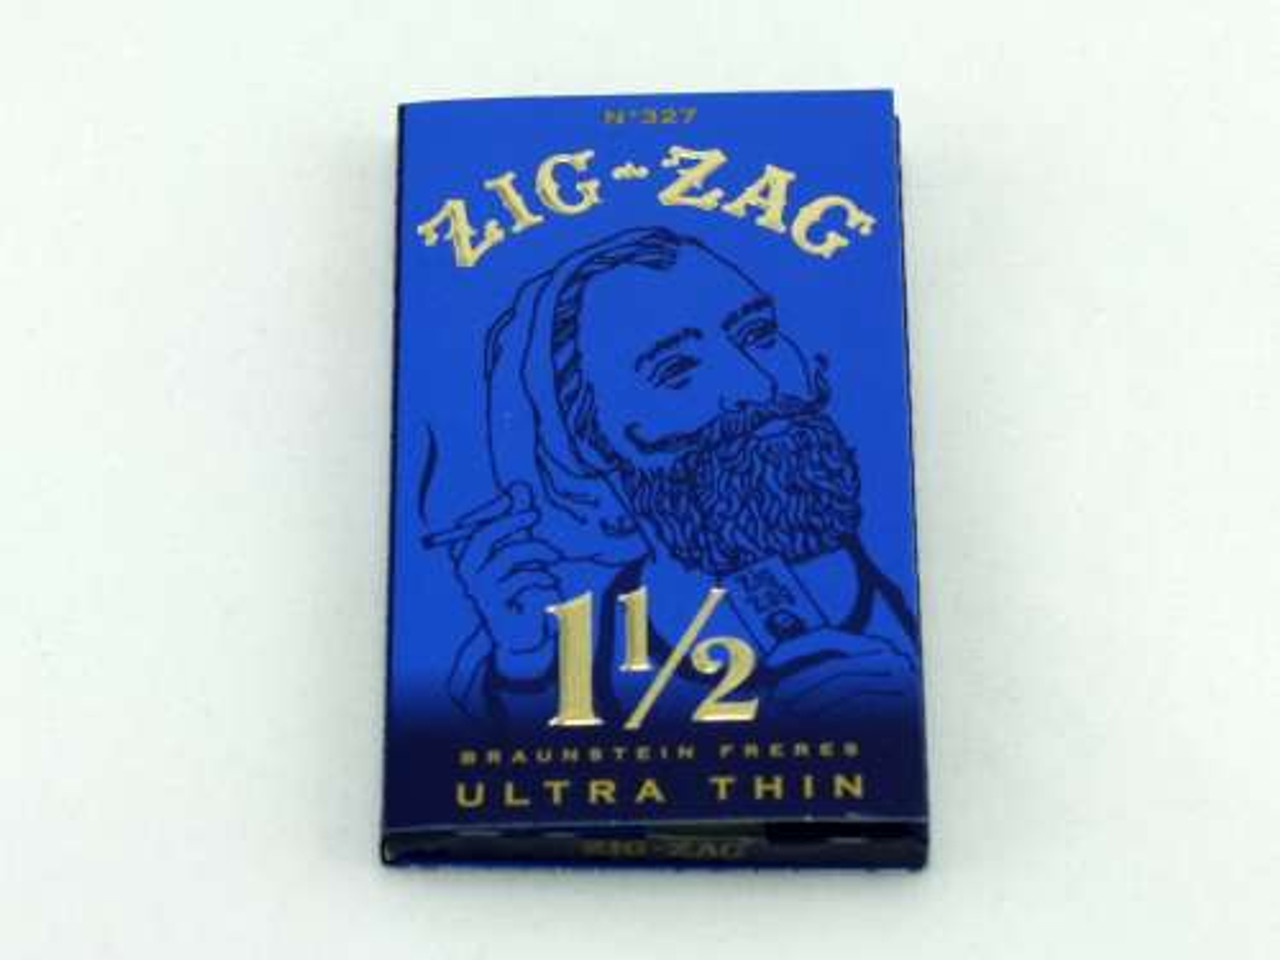 Zig Zag 1 1/2 Ultra Thin Rolling Papers